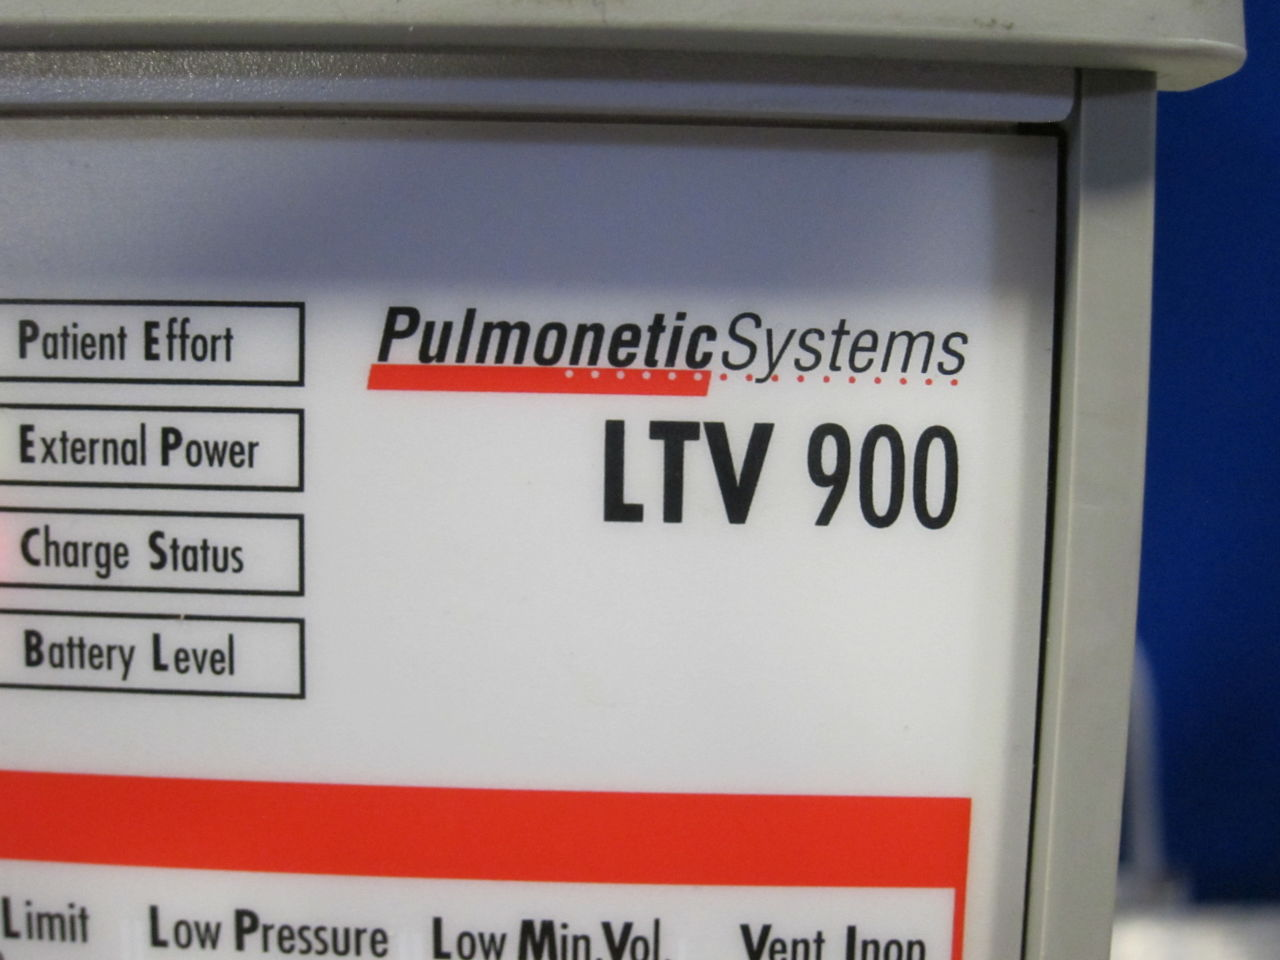 PULMONETIC SYSTEMS LTV 900 Ventilator